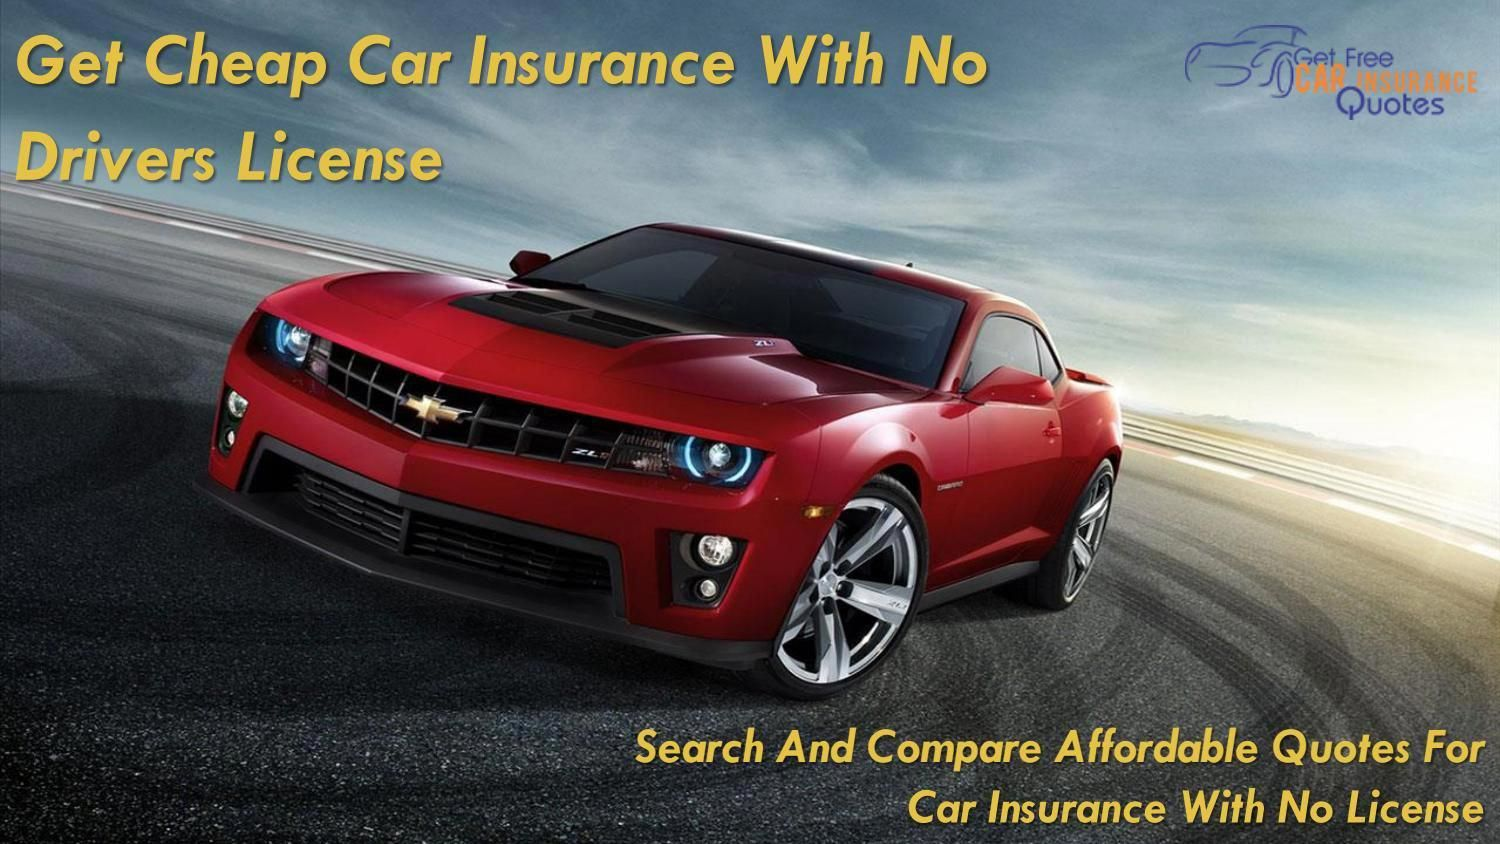 can you buy a new car without drivers license